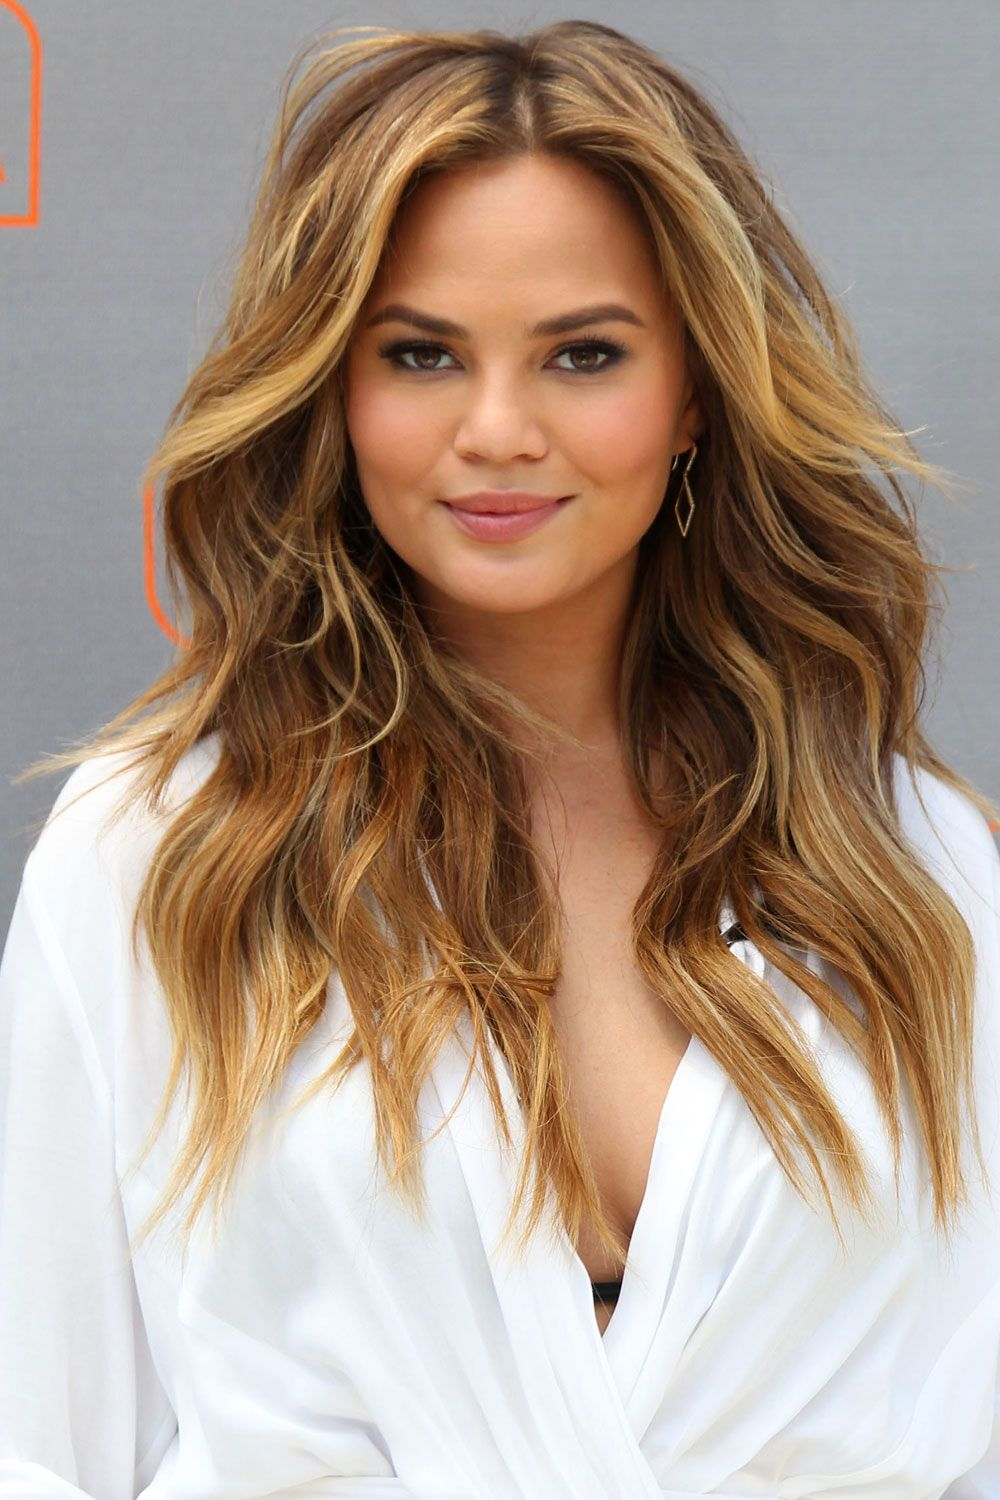 Nothing is more effortlessly sexy than model Chrissy Teigen's loose tumble of textured waves. Wash blast with a blow-dryer and a round brush for an easy daytime look.